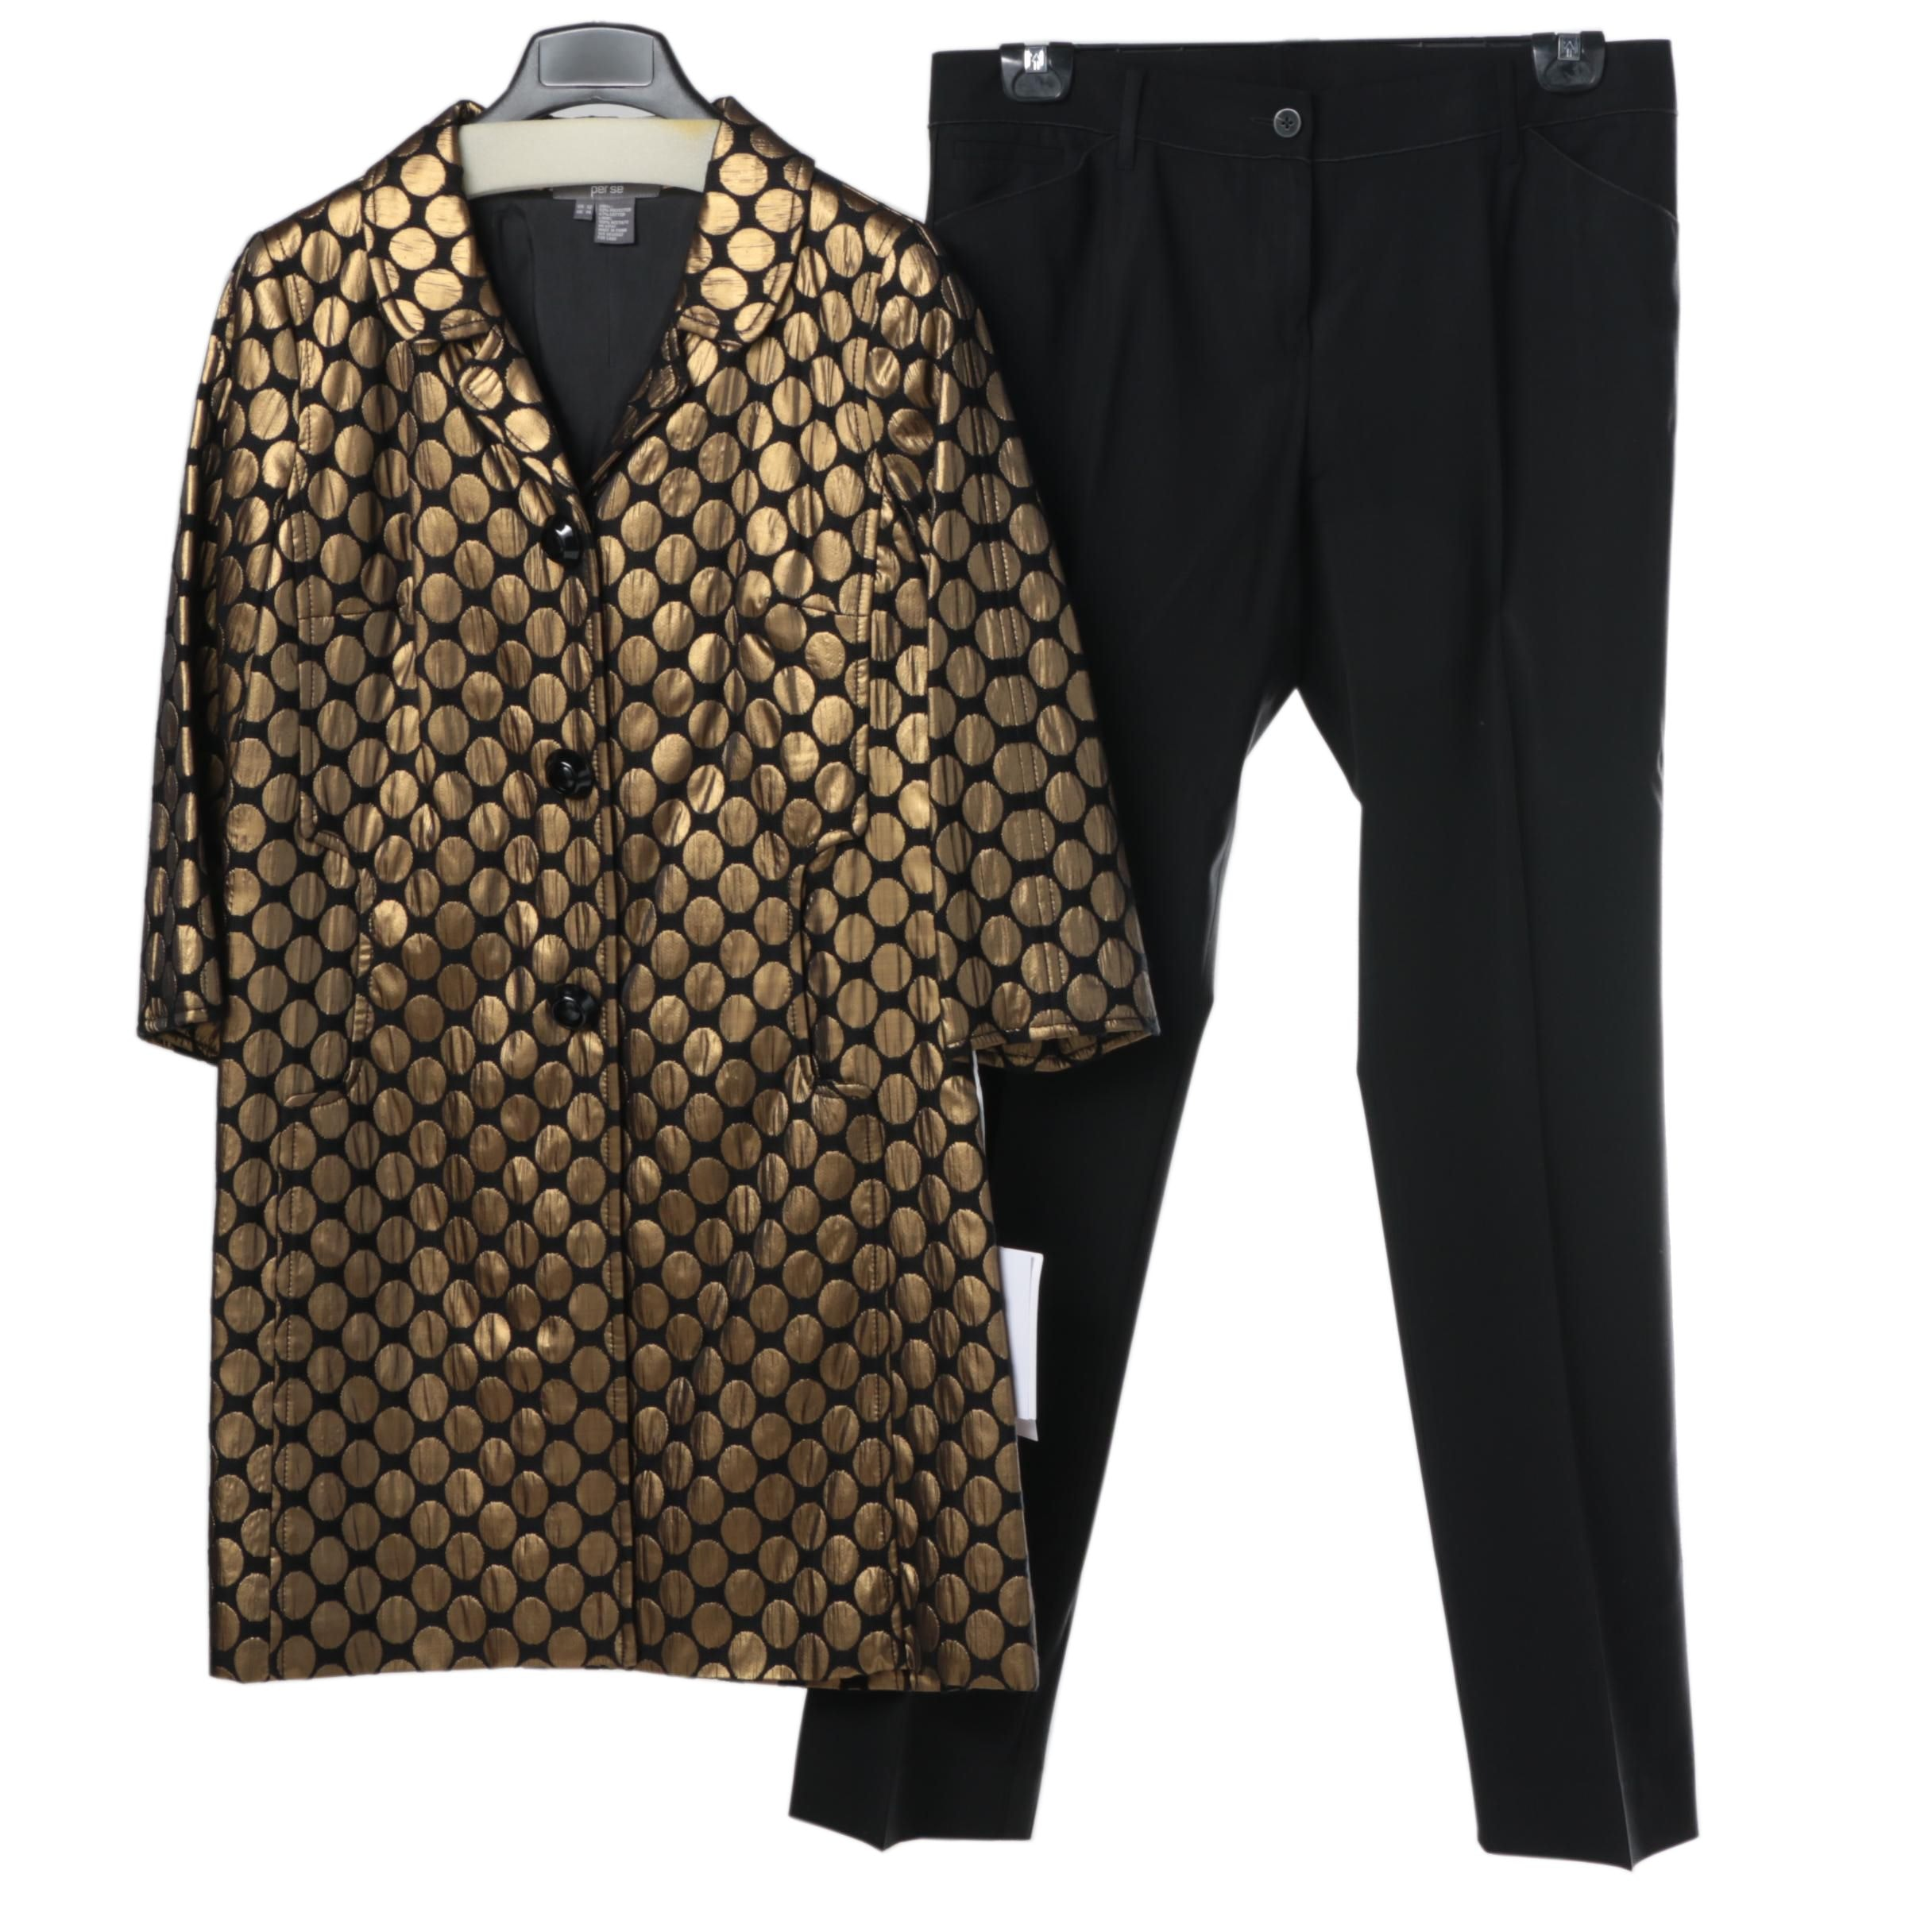 Women's Per Se Gold-Toned Cloqué Jacket with Black Pants